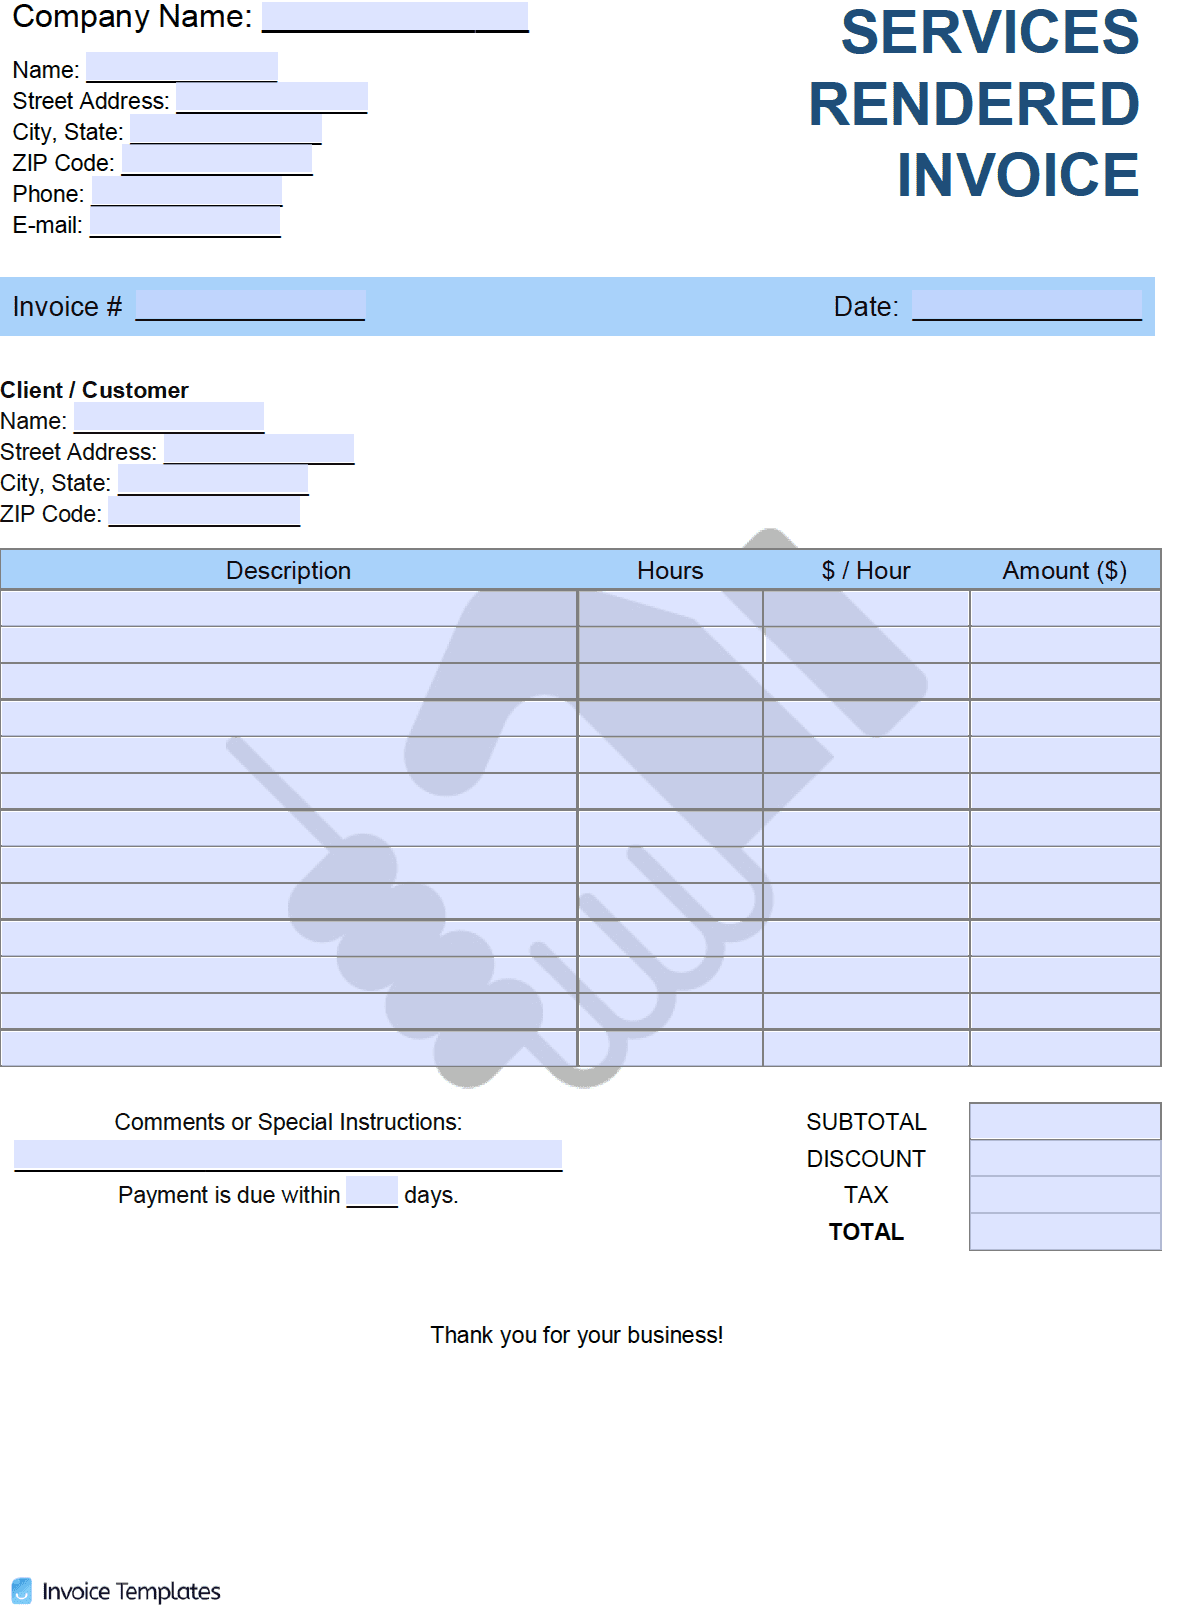 Free Services Rendered Invoice Template   PDF   WORD   EXCEL